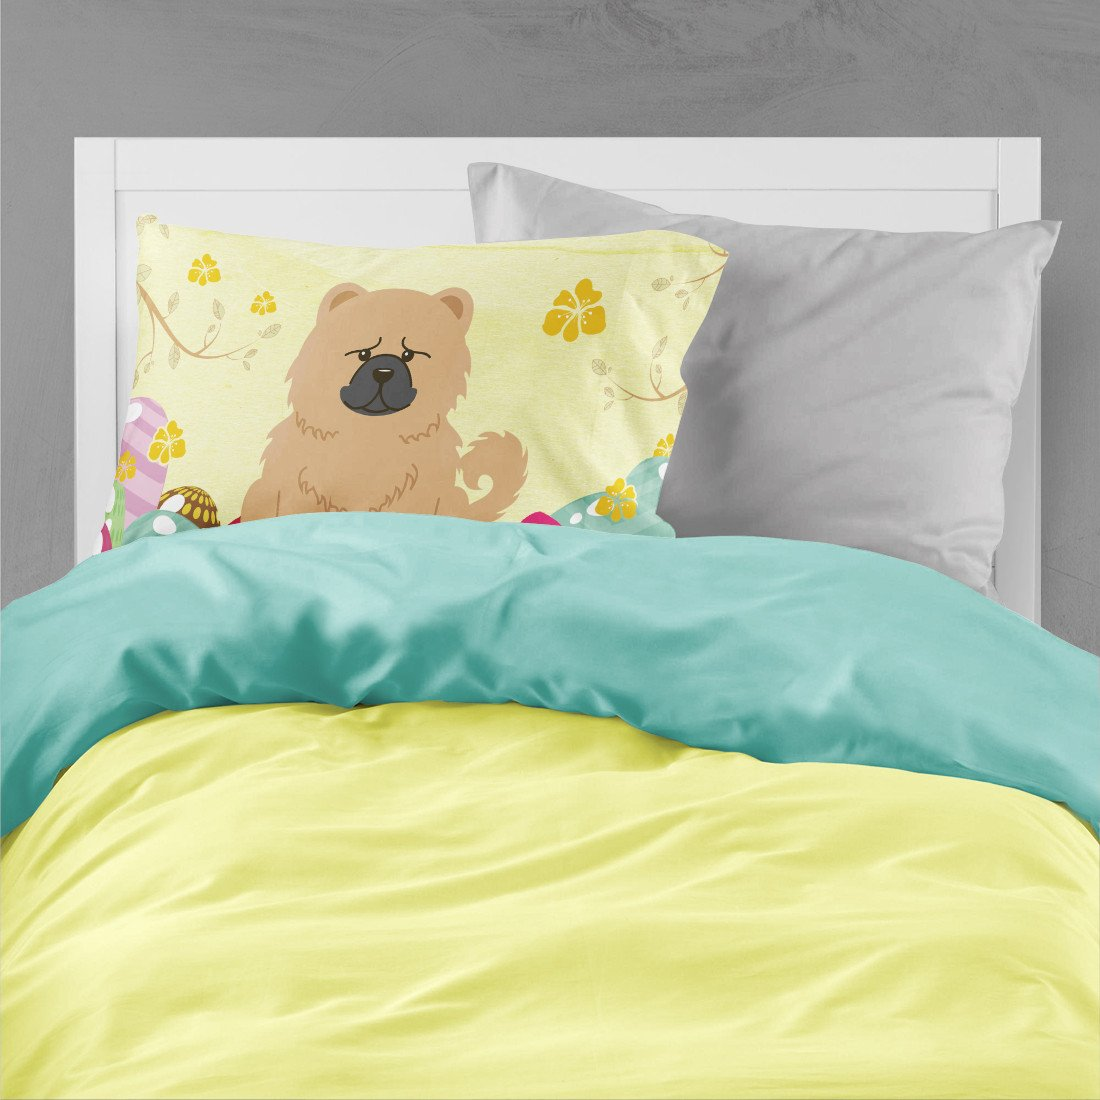 Easter Eggs Chow Chow Cream Fabric Standard Pillowcase BB6144PILLOWCASE by Caroline's Treasures